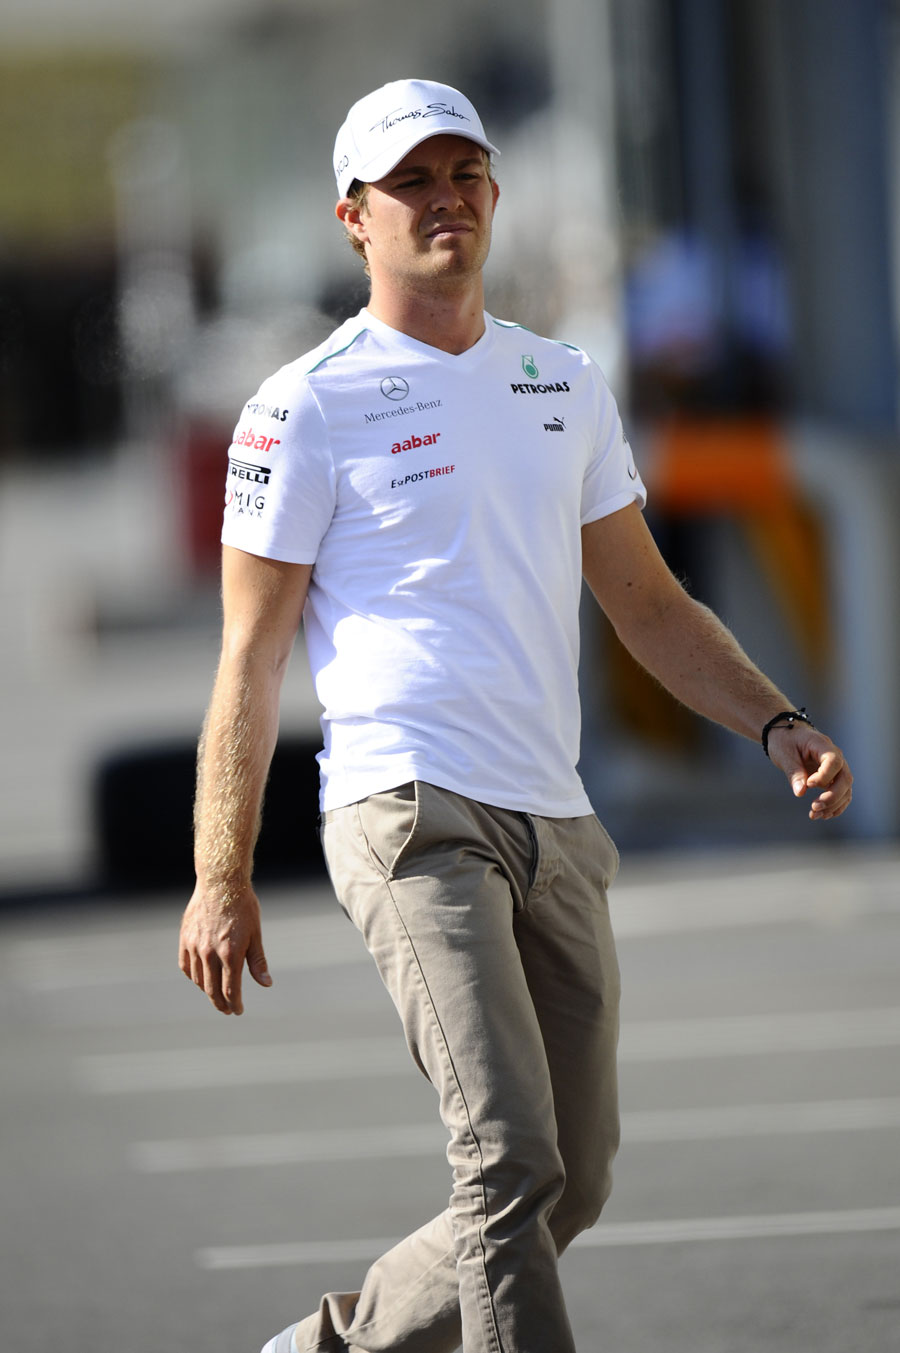 Nico Rosberg in the paddock on Thursday